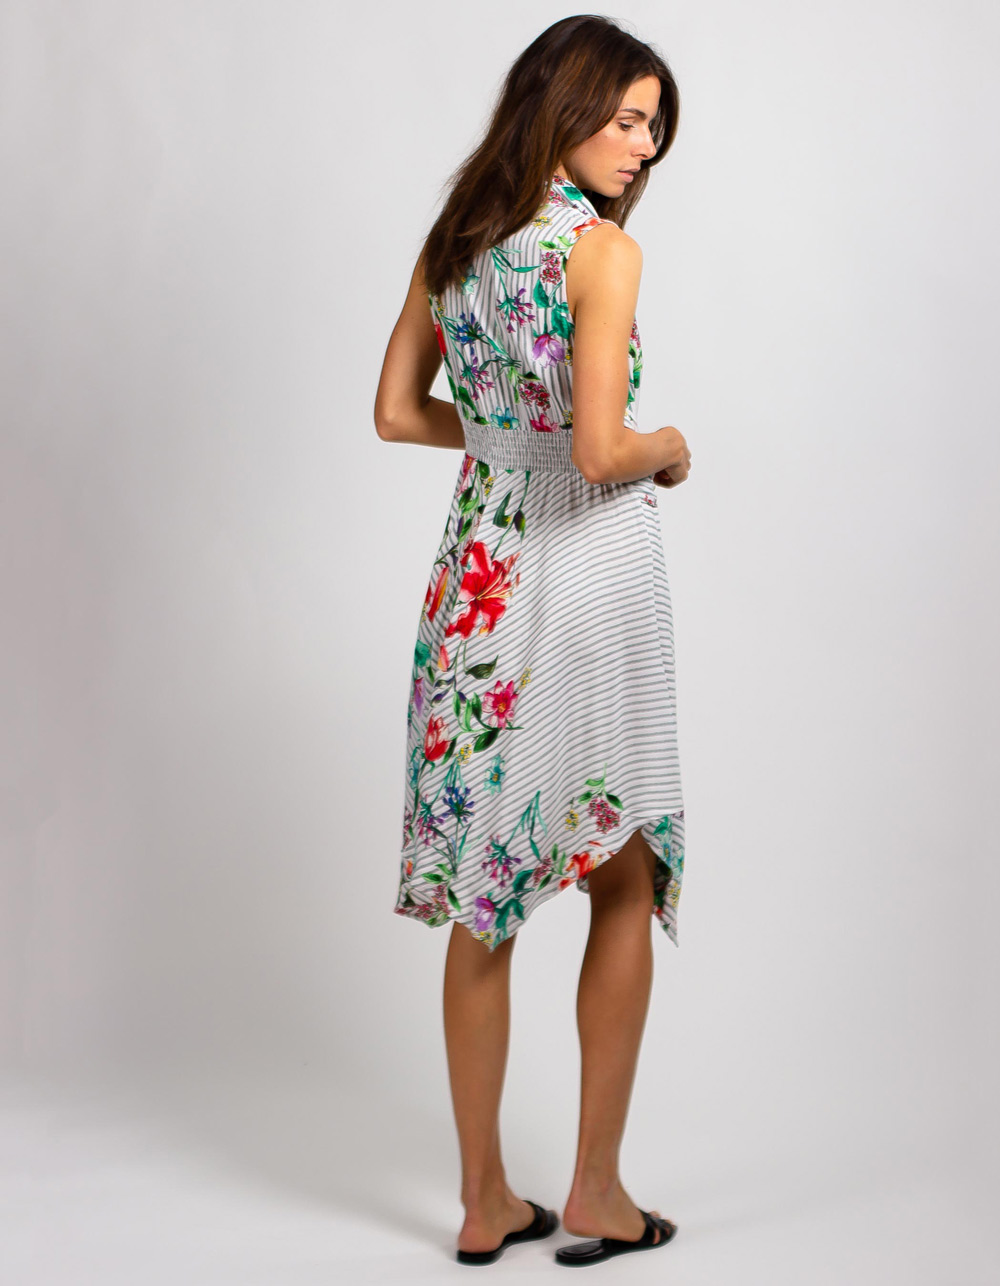 Vestido con estampado floral - Backside